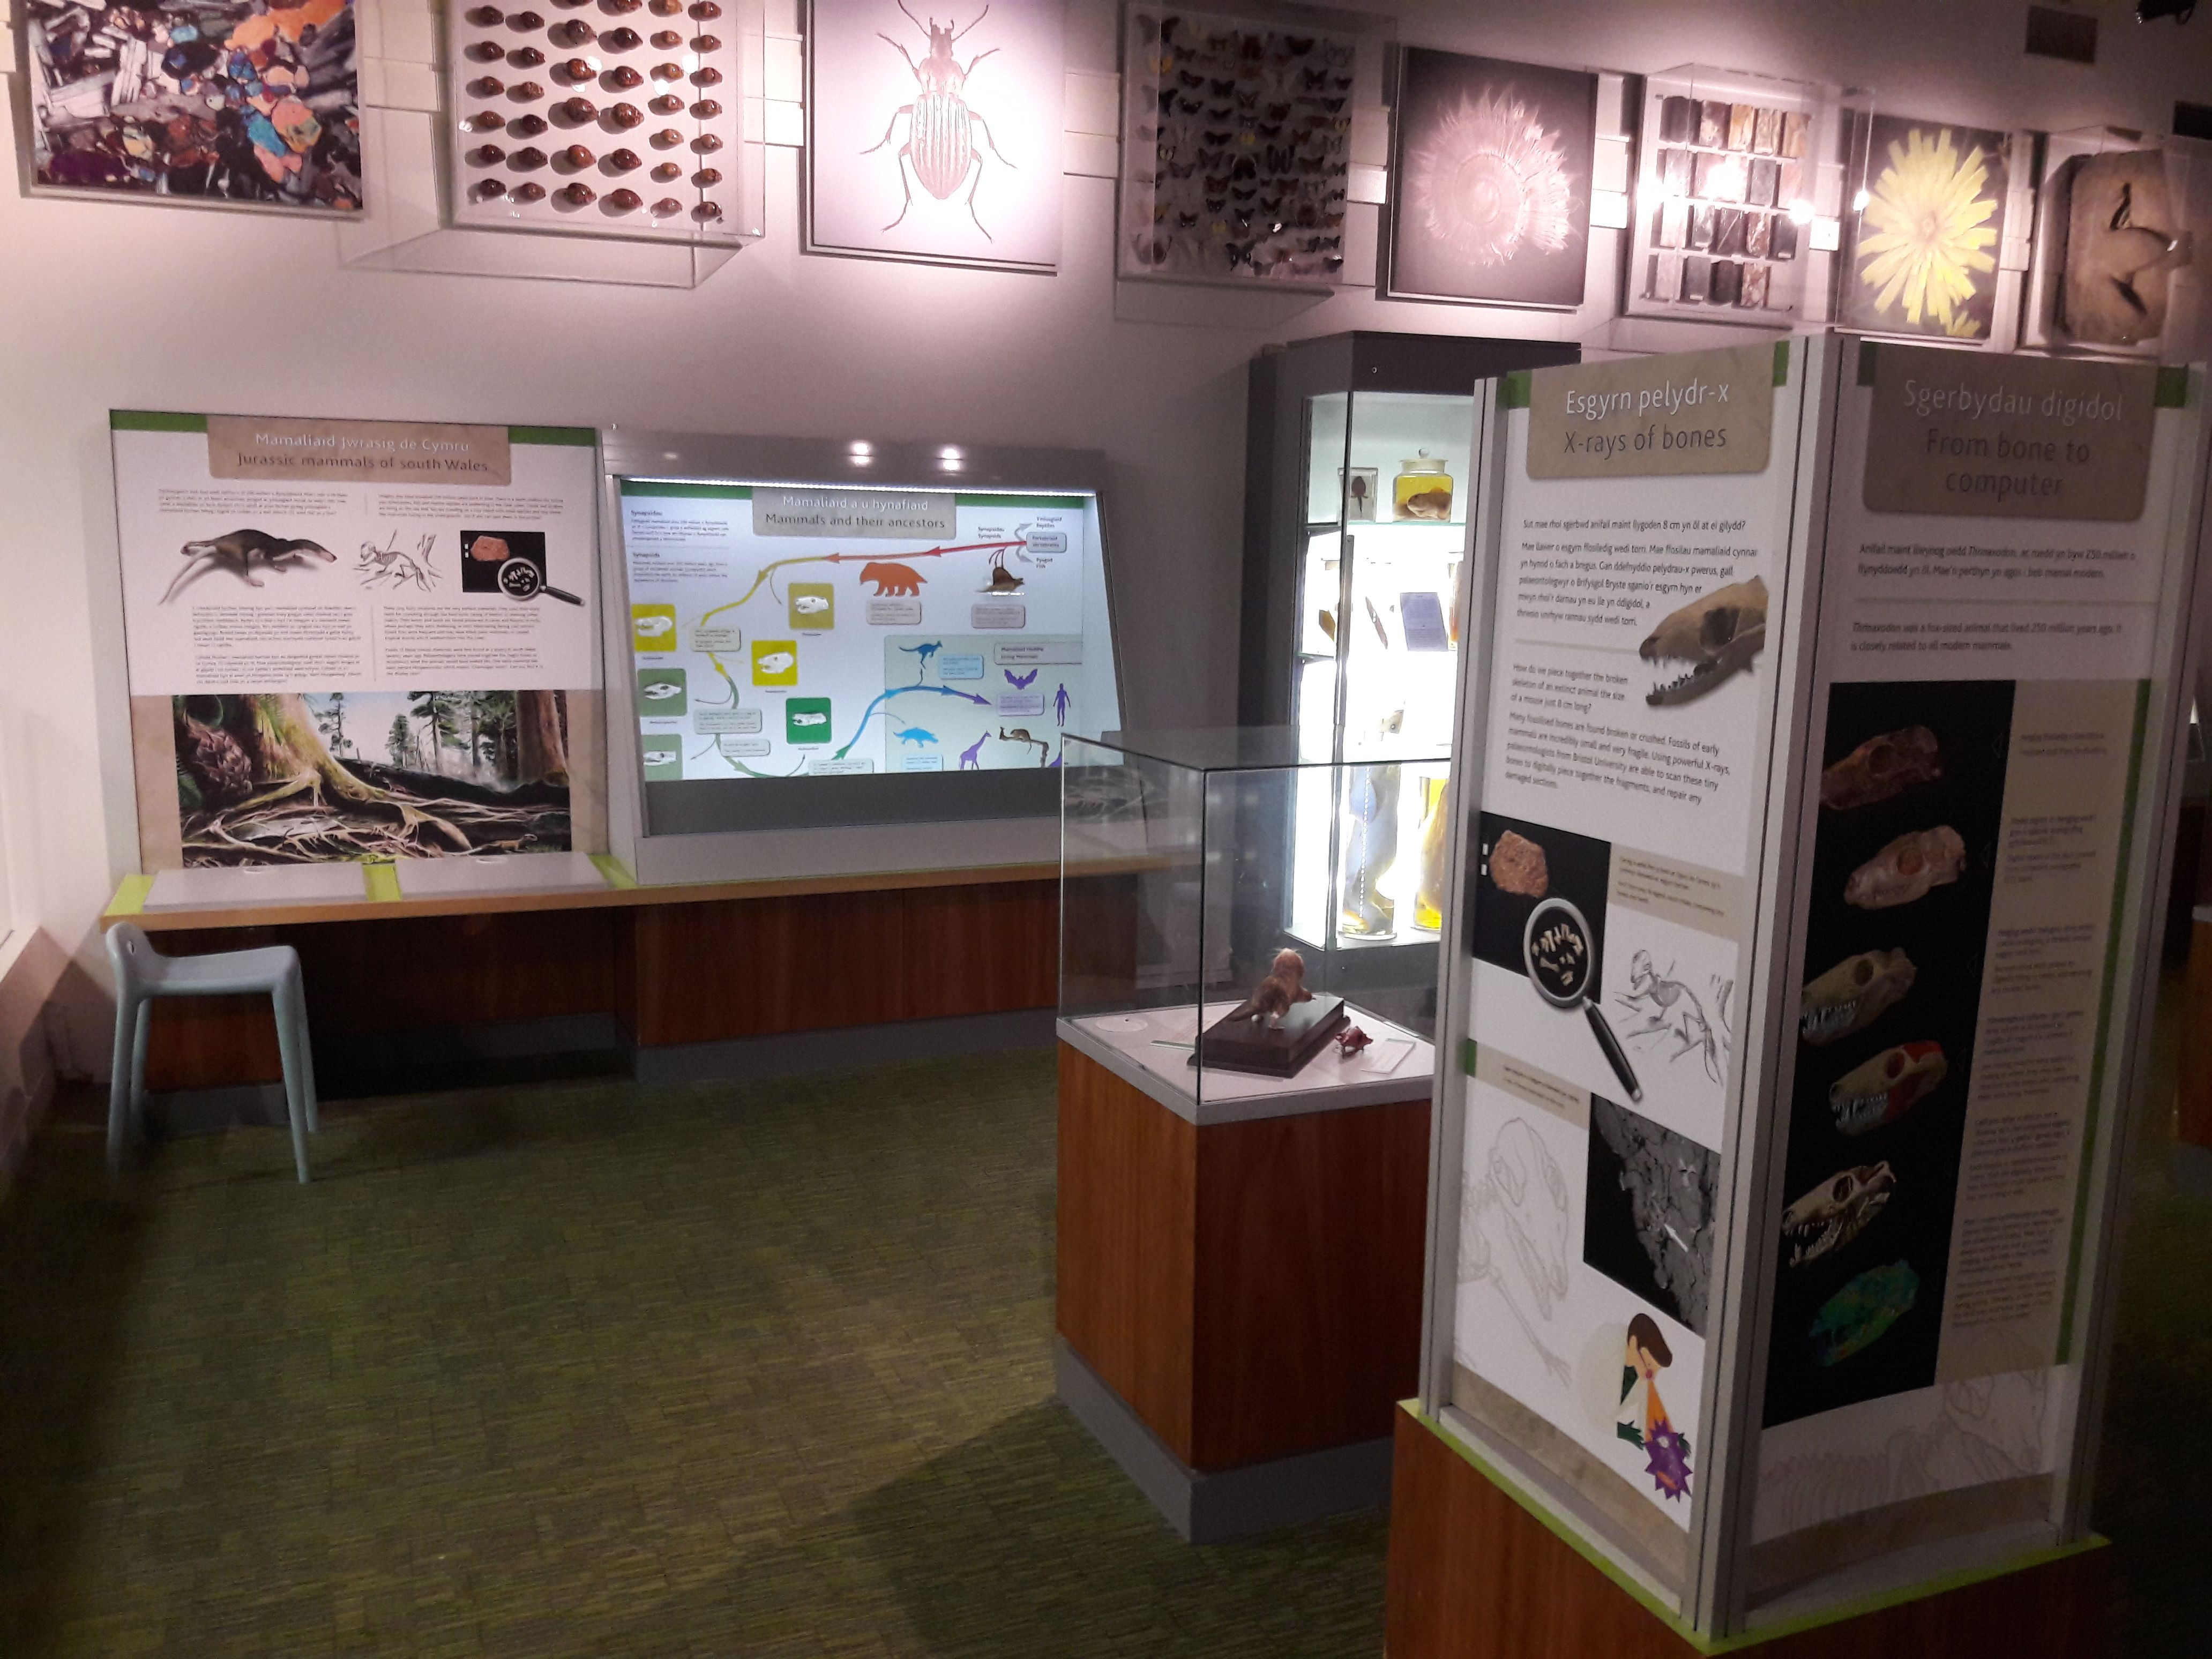 The display in the Insight Gallery at National Museum Cardiff